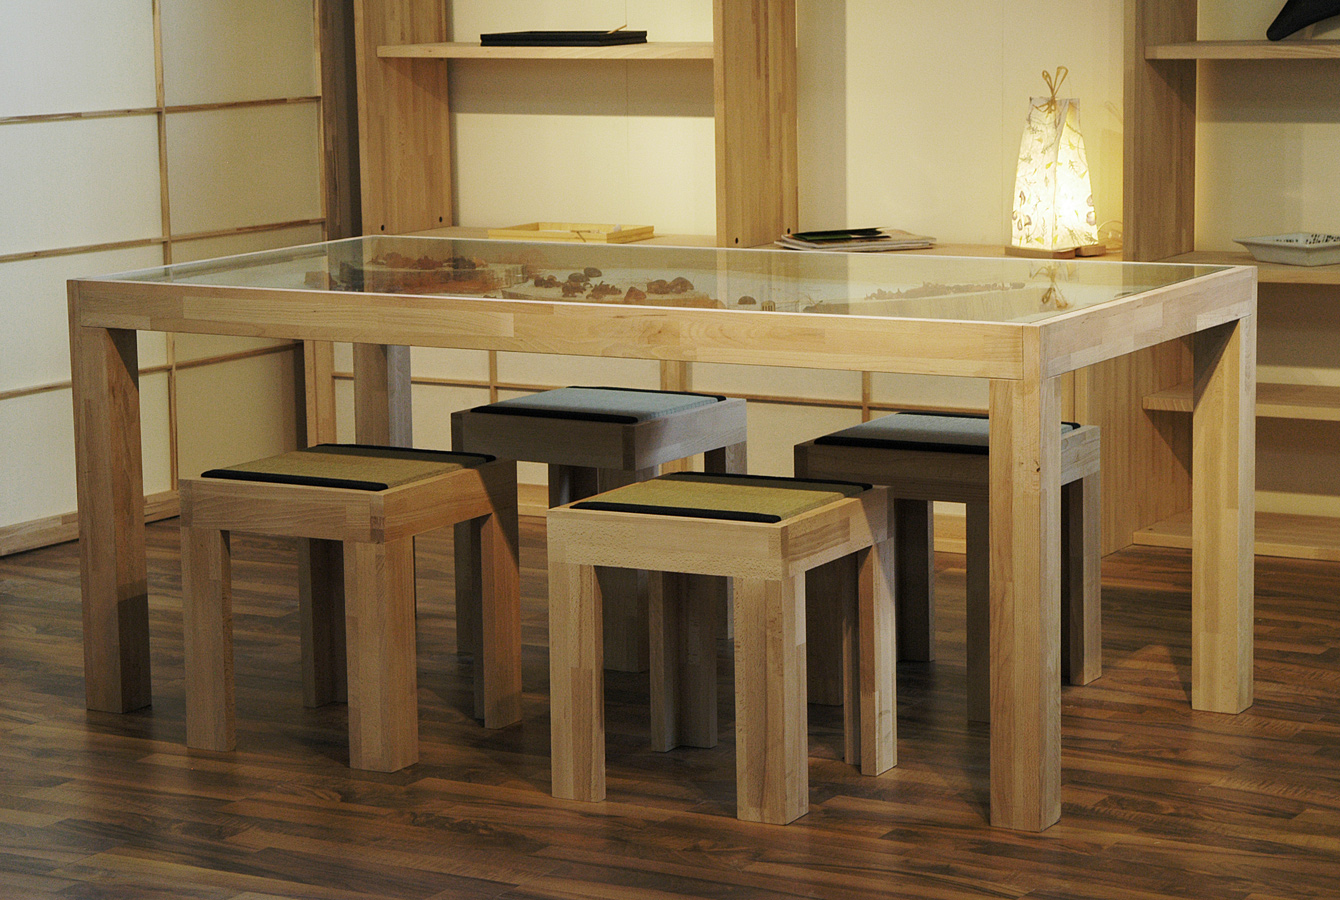 Table extensible rectangulaire en bois collection zen by for Table rectangulaire extensible bois